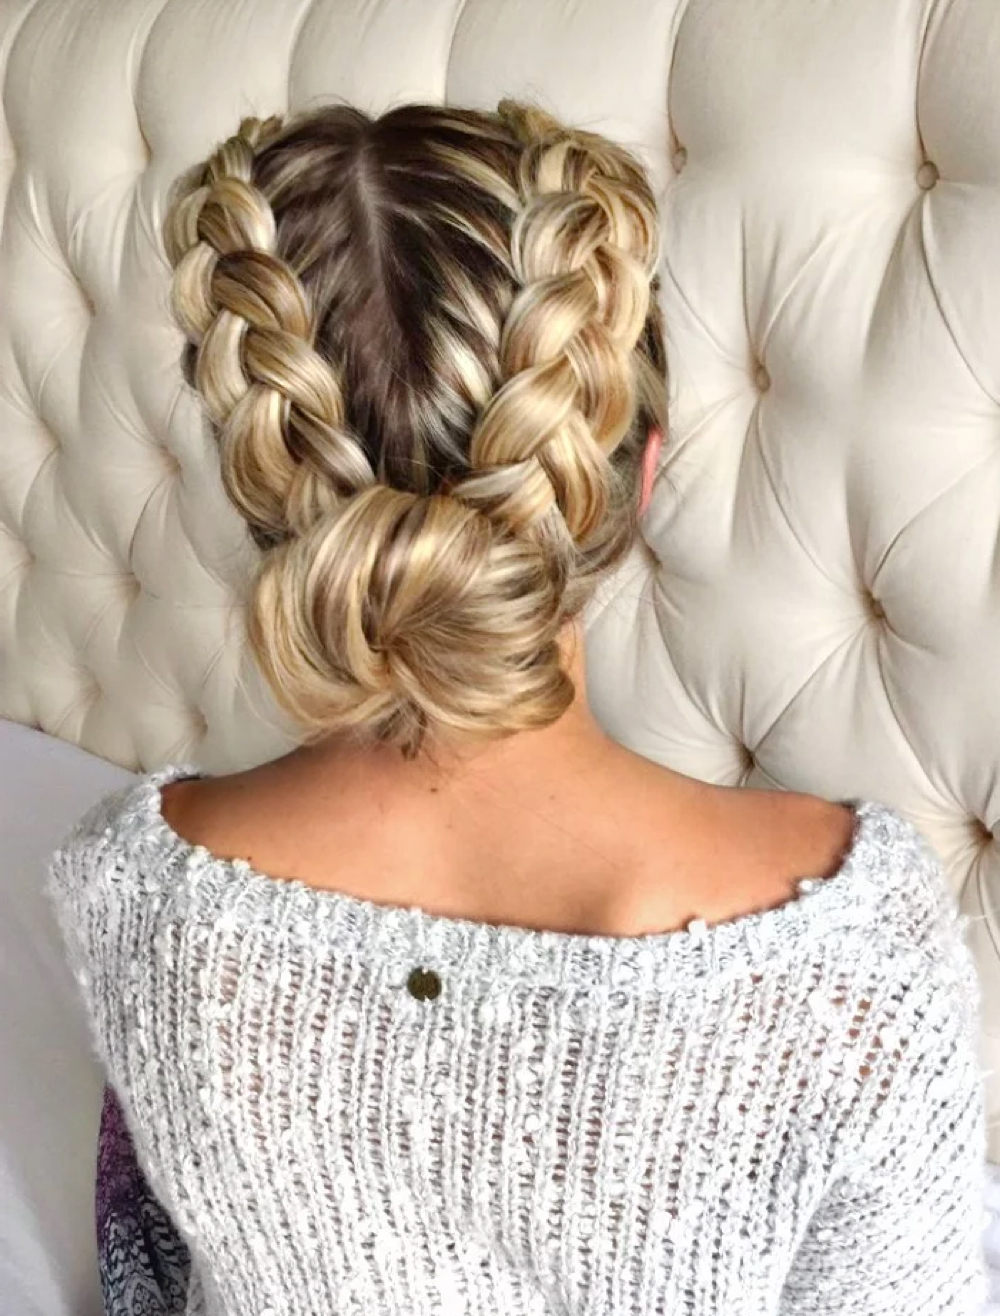 29 Gorgeous Braided Updo Ideas For 2019 Pertaining To Trendy Plaited Chignon Braided Hairstyles (View 4 of 20)